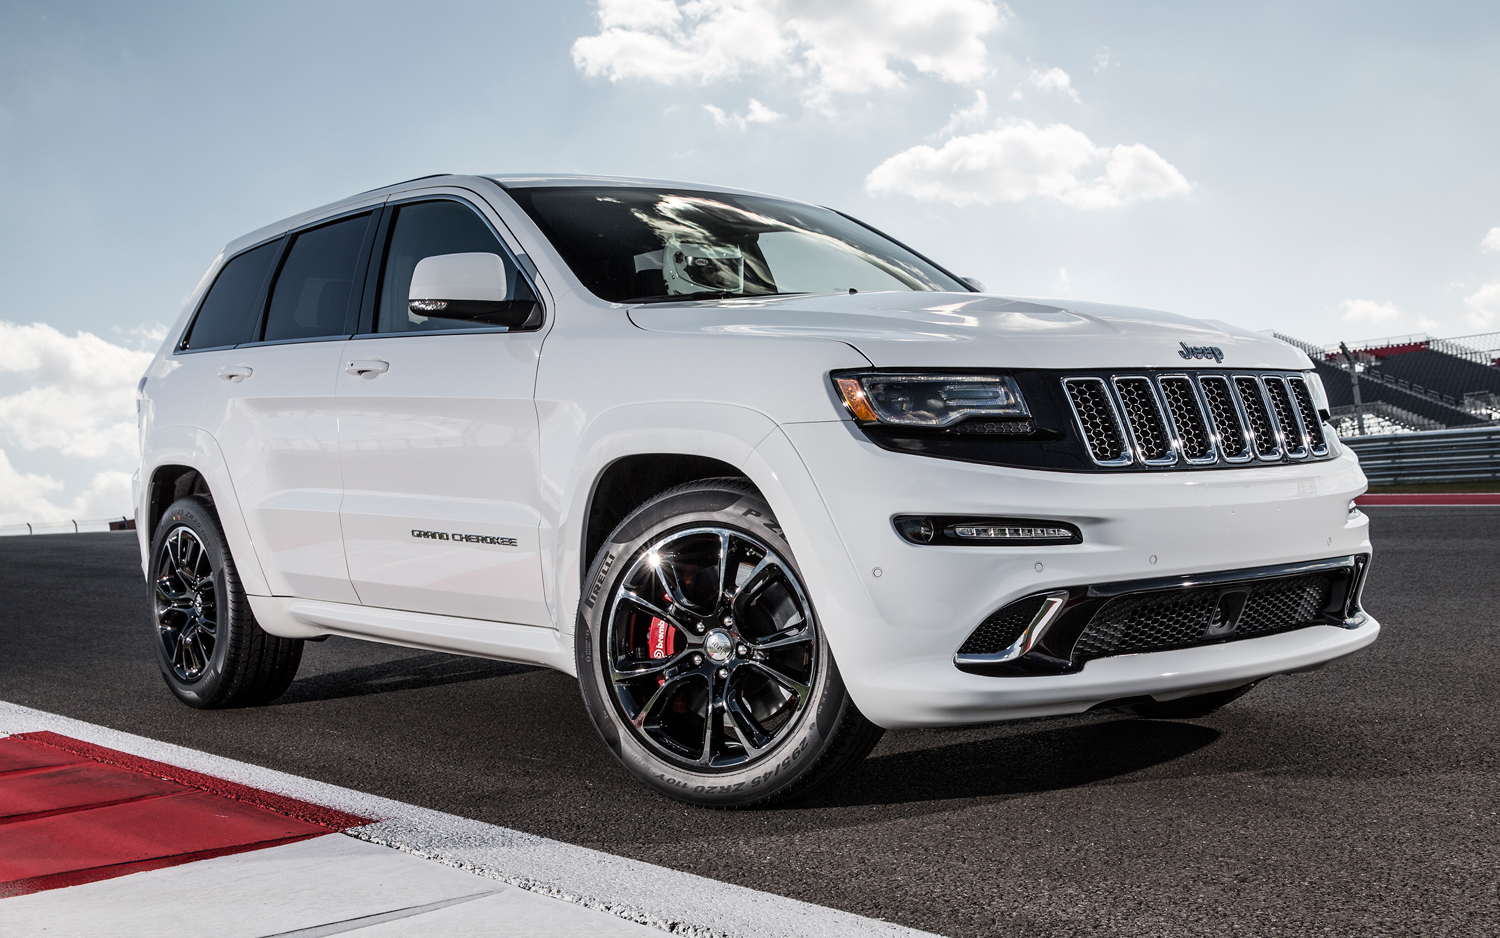 2019 Jeep Grand Cherokee SRT photo - 4